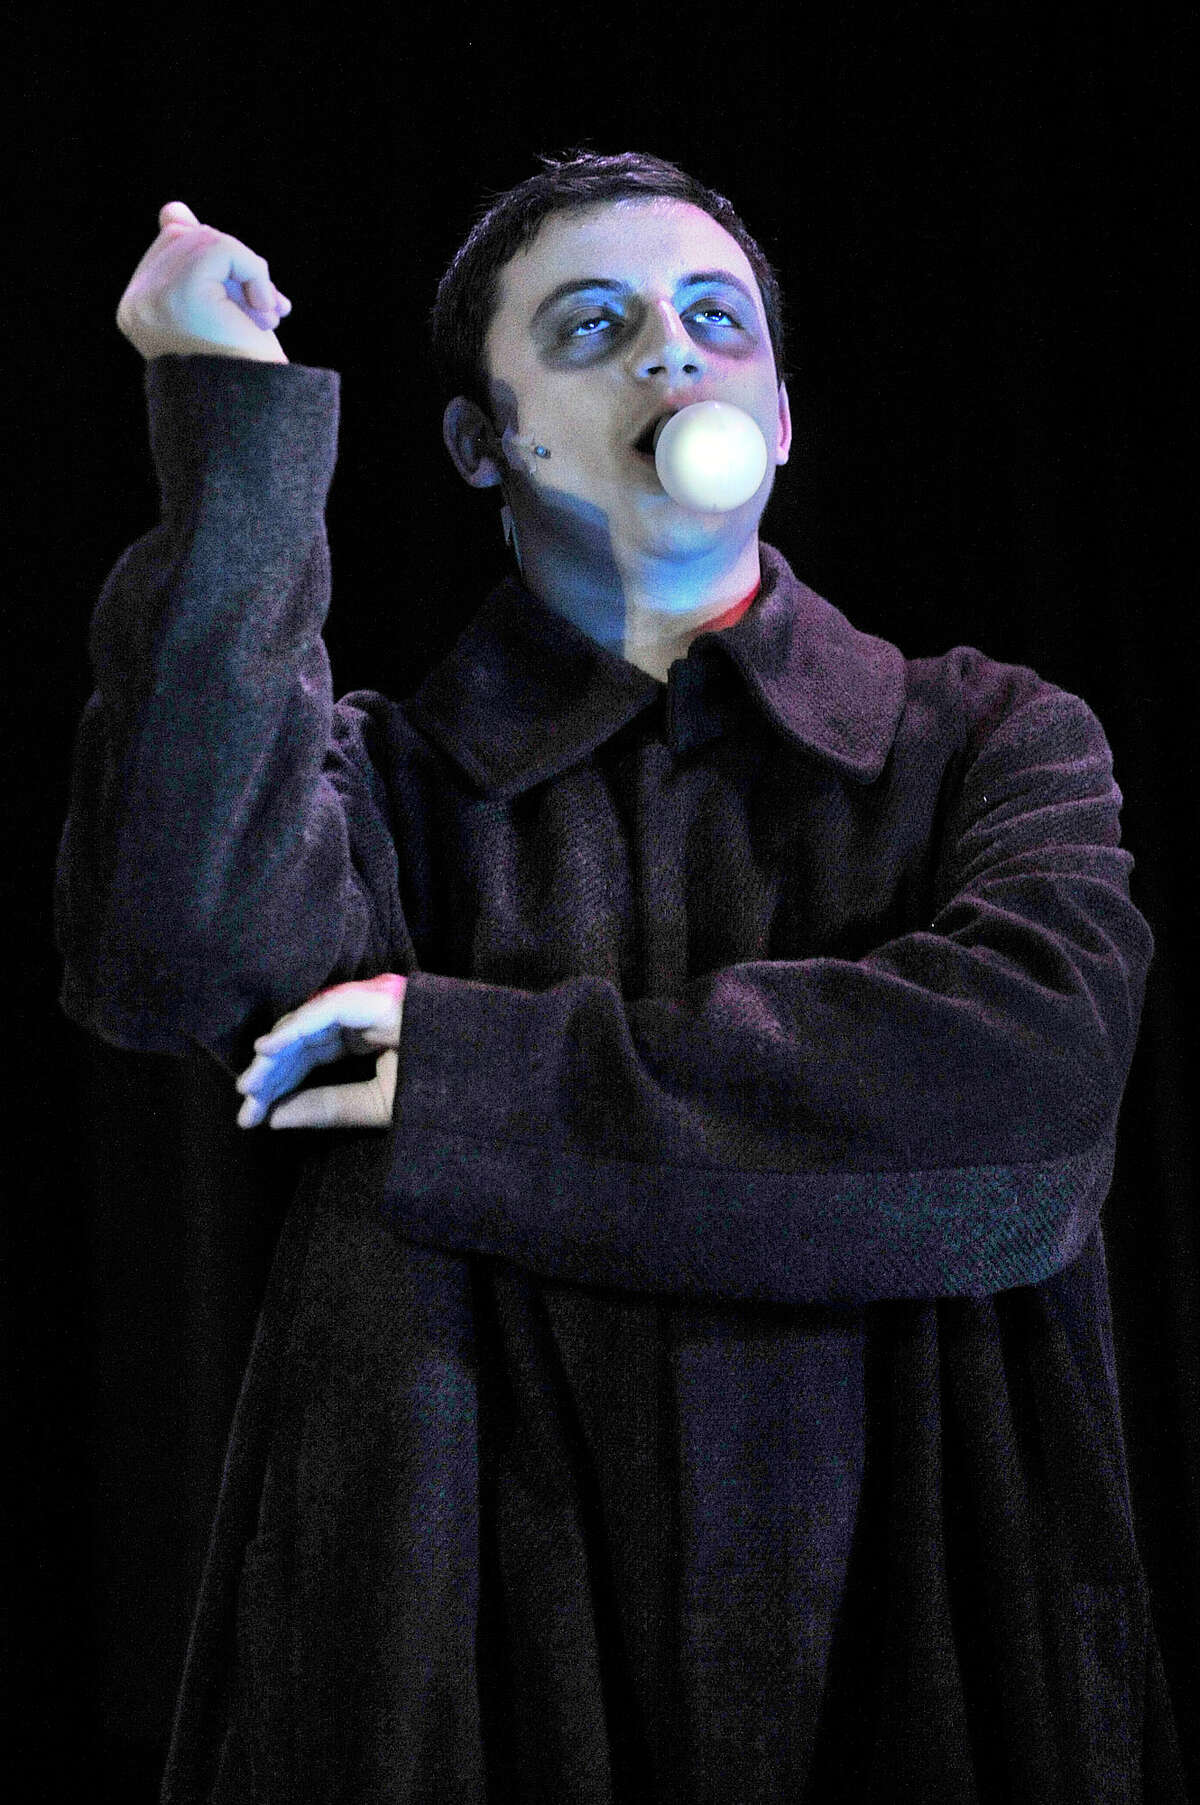 Will Bruno, playing Uncle Fester, gets a light bulb to illuminate as he holds it in his mouth during the Stamford All-School Musical dress rehearsal performance of The Addams Family musical at Rippowam Middle School in Stamford, Conn., on Tuesday, Dec. 2, 2014. There will be five performances - December 6, 12, 13 and 14 at 7:30 p.m. and December 7 and 14 at 3 p.m. with a special Meet the Cast event following the December 7 matinee. For more information and to purchase tickets go to www.StamfordAllSchoolMusical.org.